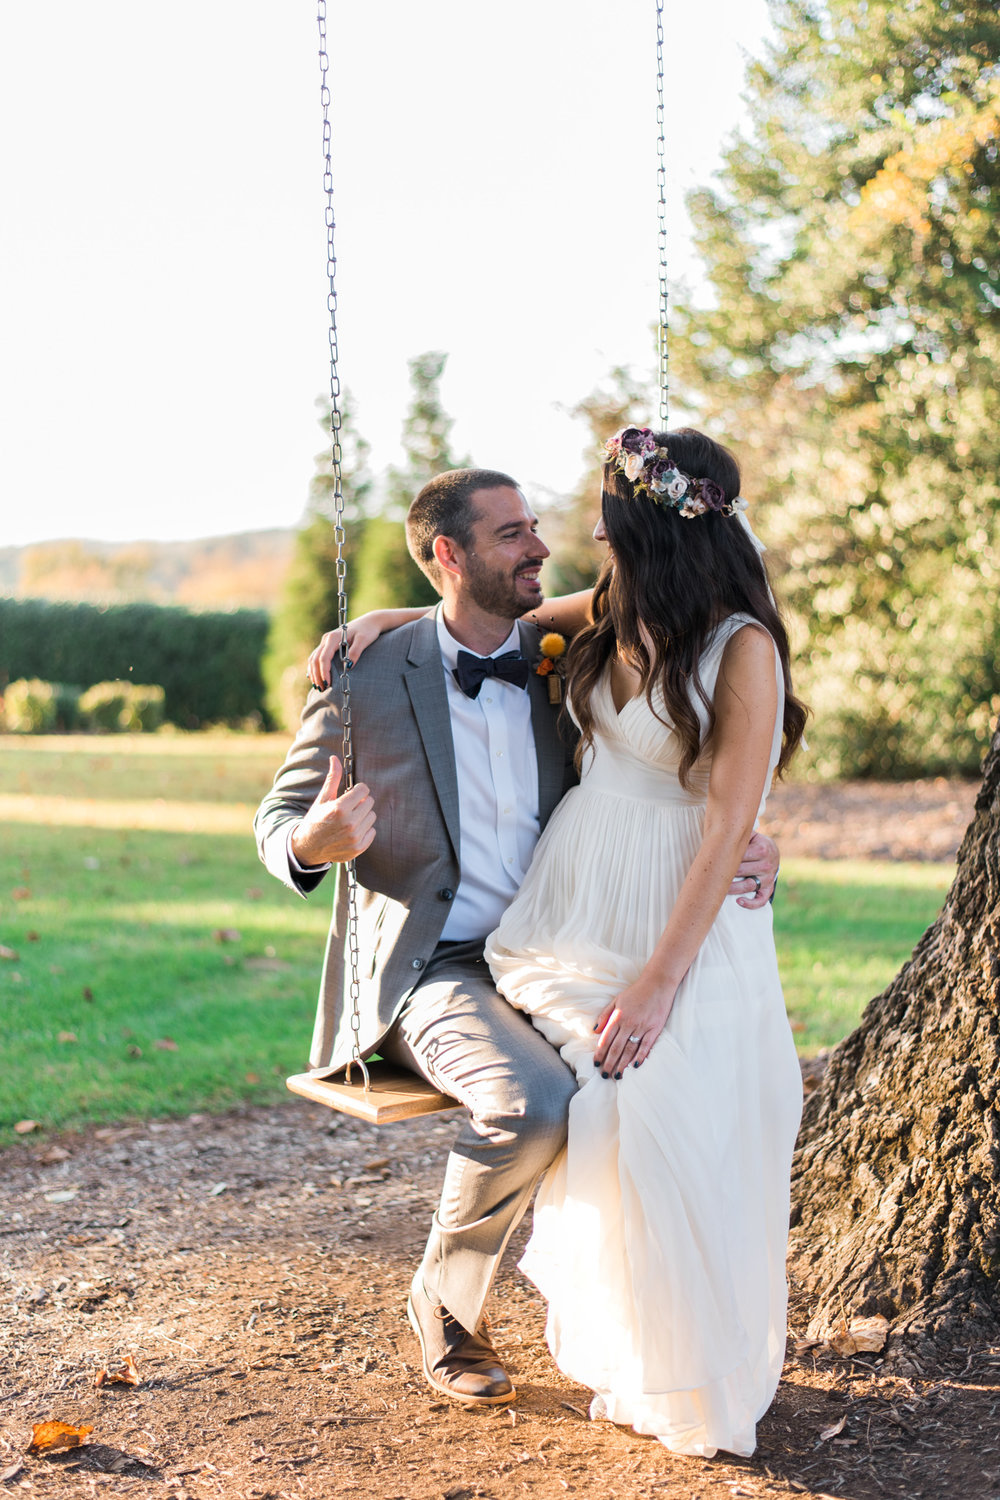 The_Trivium_Estate_Forest_VA_Wedding_Flower_Crown_boho_wedding_classic_wedding_Virginia_Wedding_photographer078.jpg